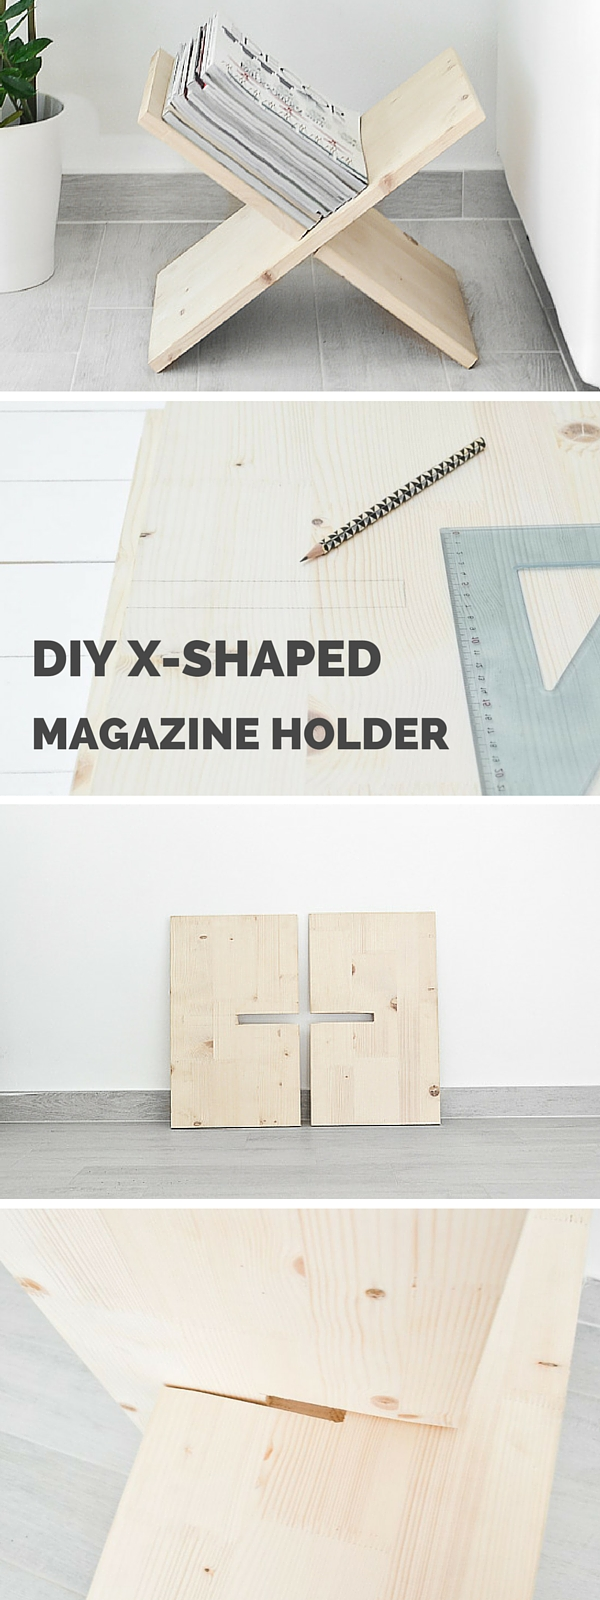 Diy Wall Art That Looks Expensive : Expensive looking diy home decor crafts homesthetics